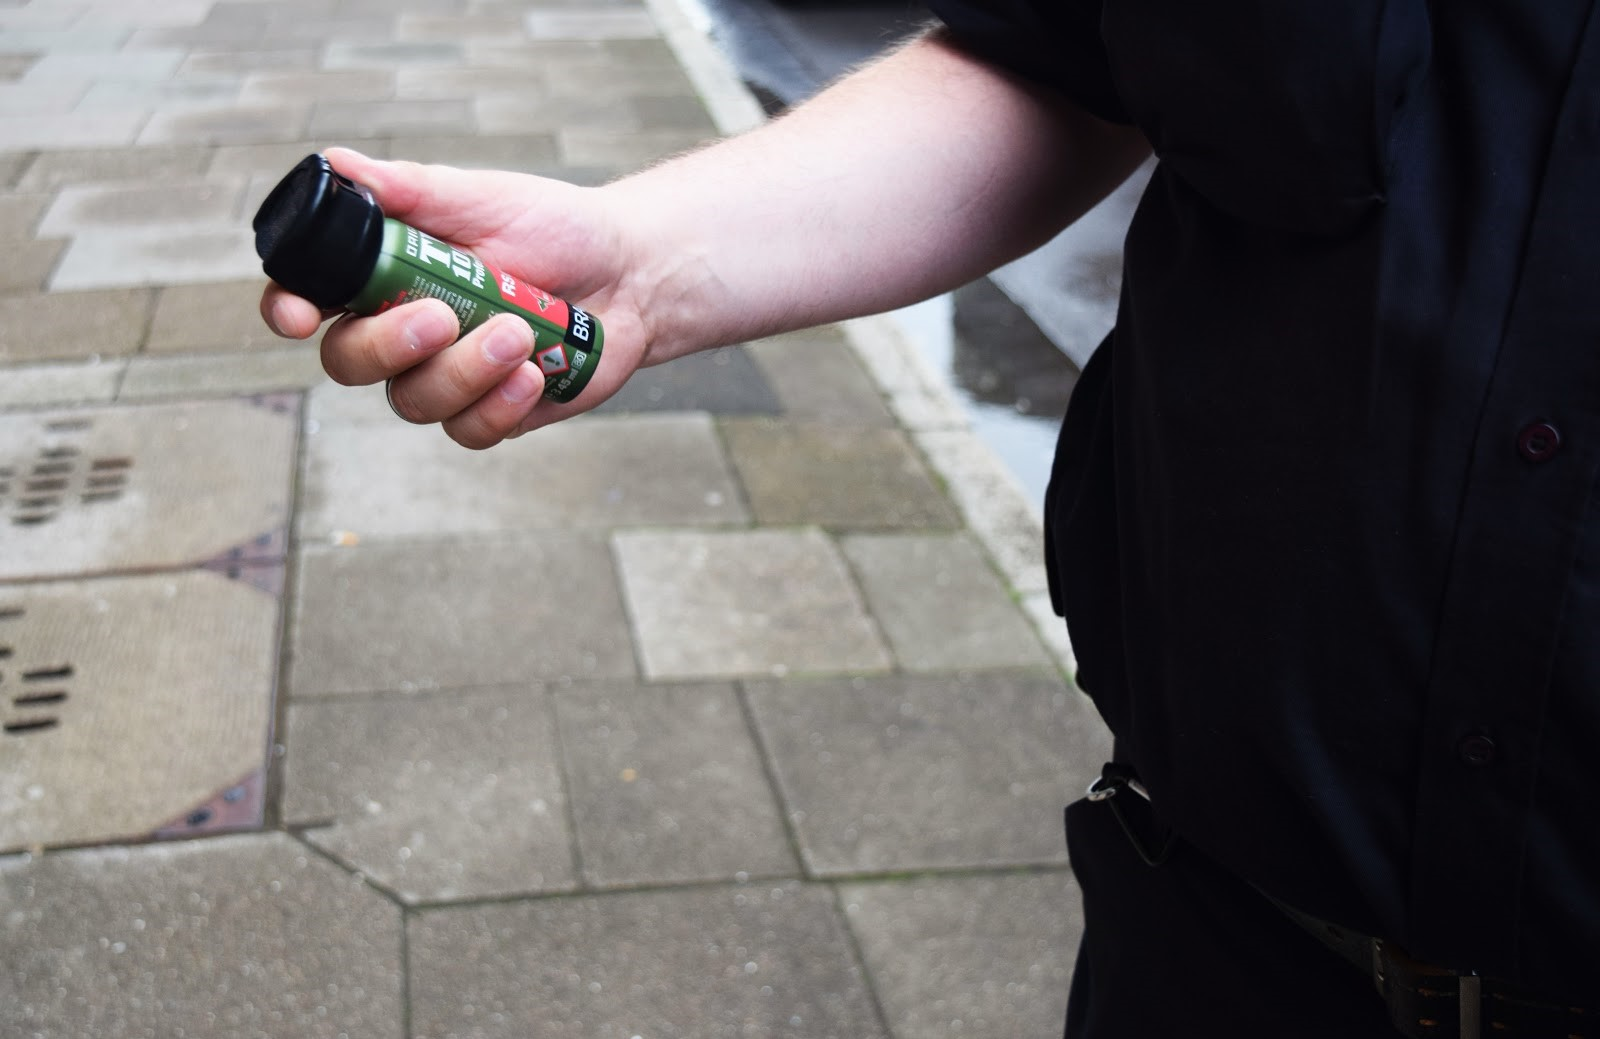 In Hamburg, Germany security guards also carry pepper spray as part of their equipment. This security guard, who requested to go unnamed, says he has never had to use the pepper spray and hopes he never has to. Sharmaine Jenny Penning/DMJX